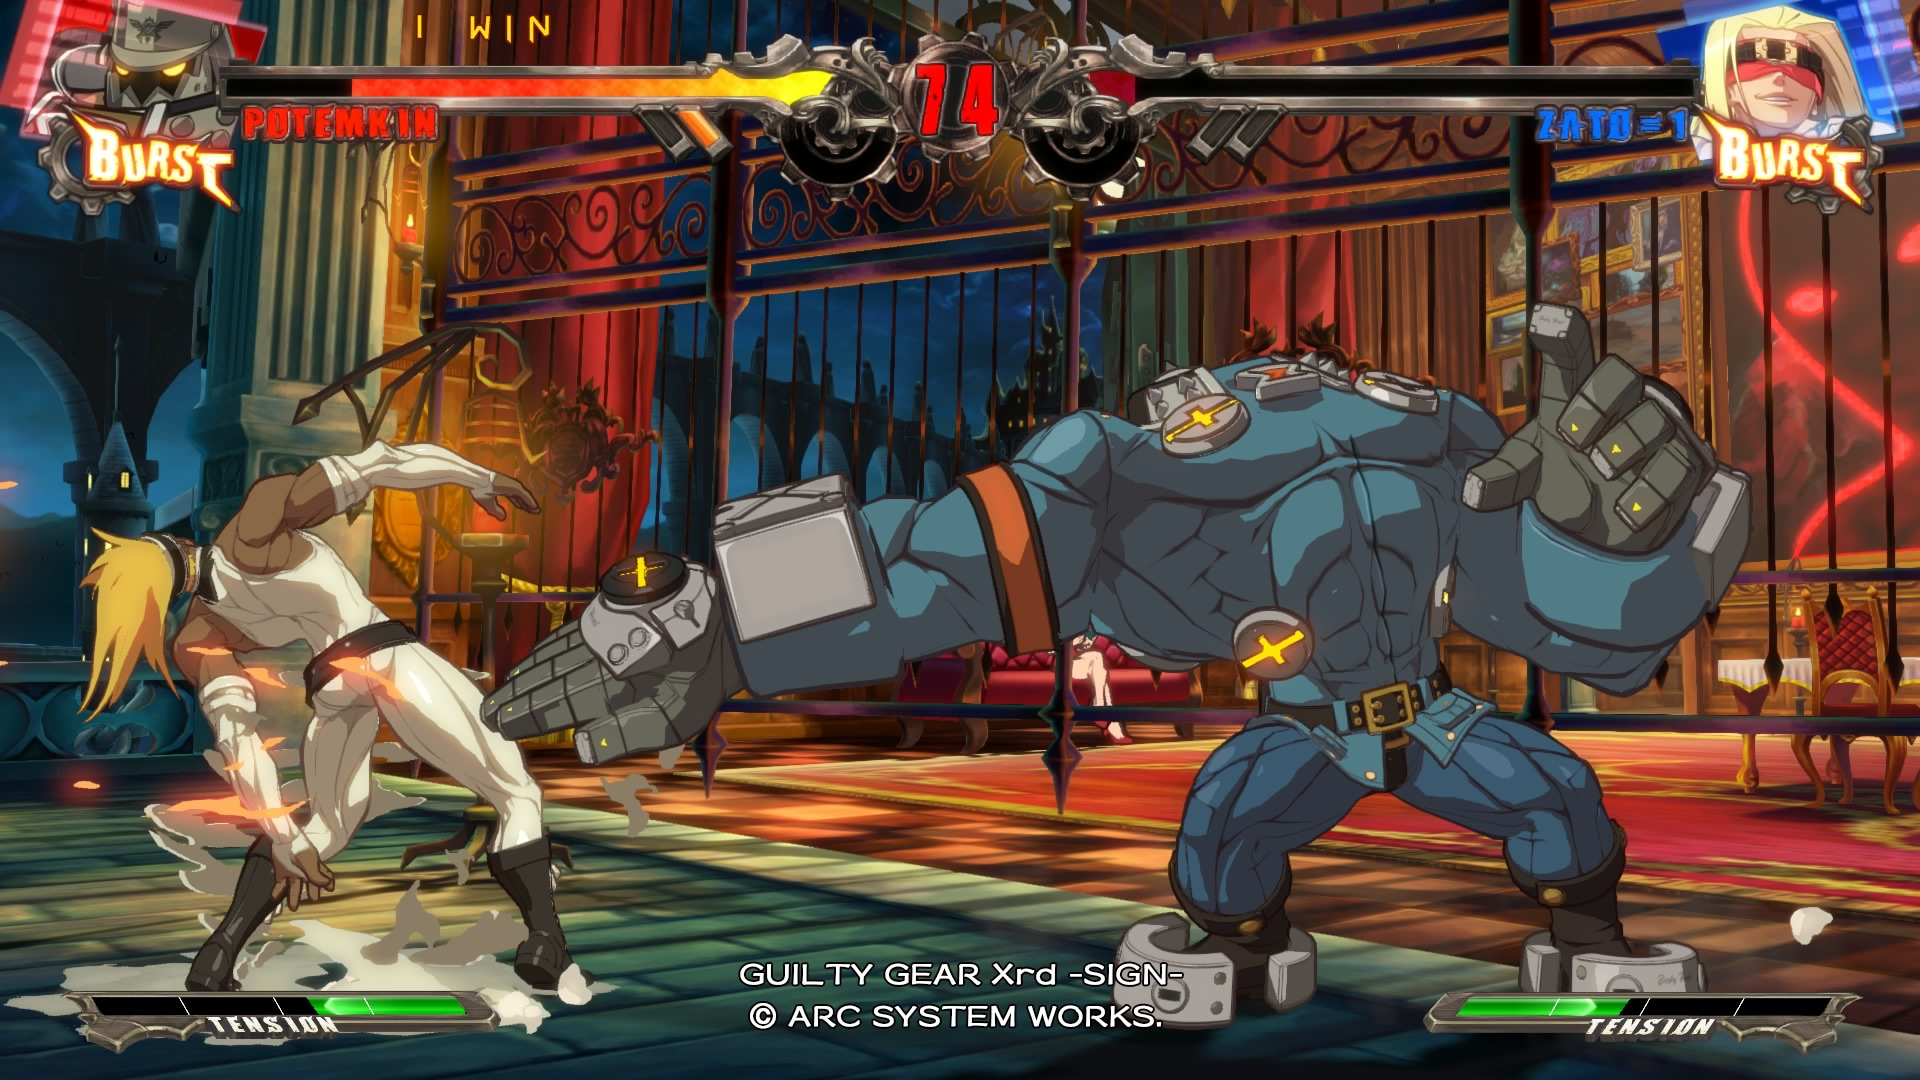 Guilty gear xrd sign ps4 review let s rock again usgamer